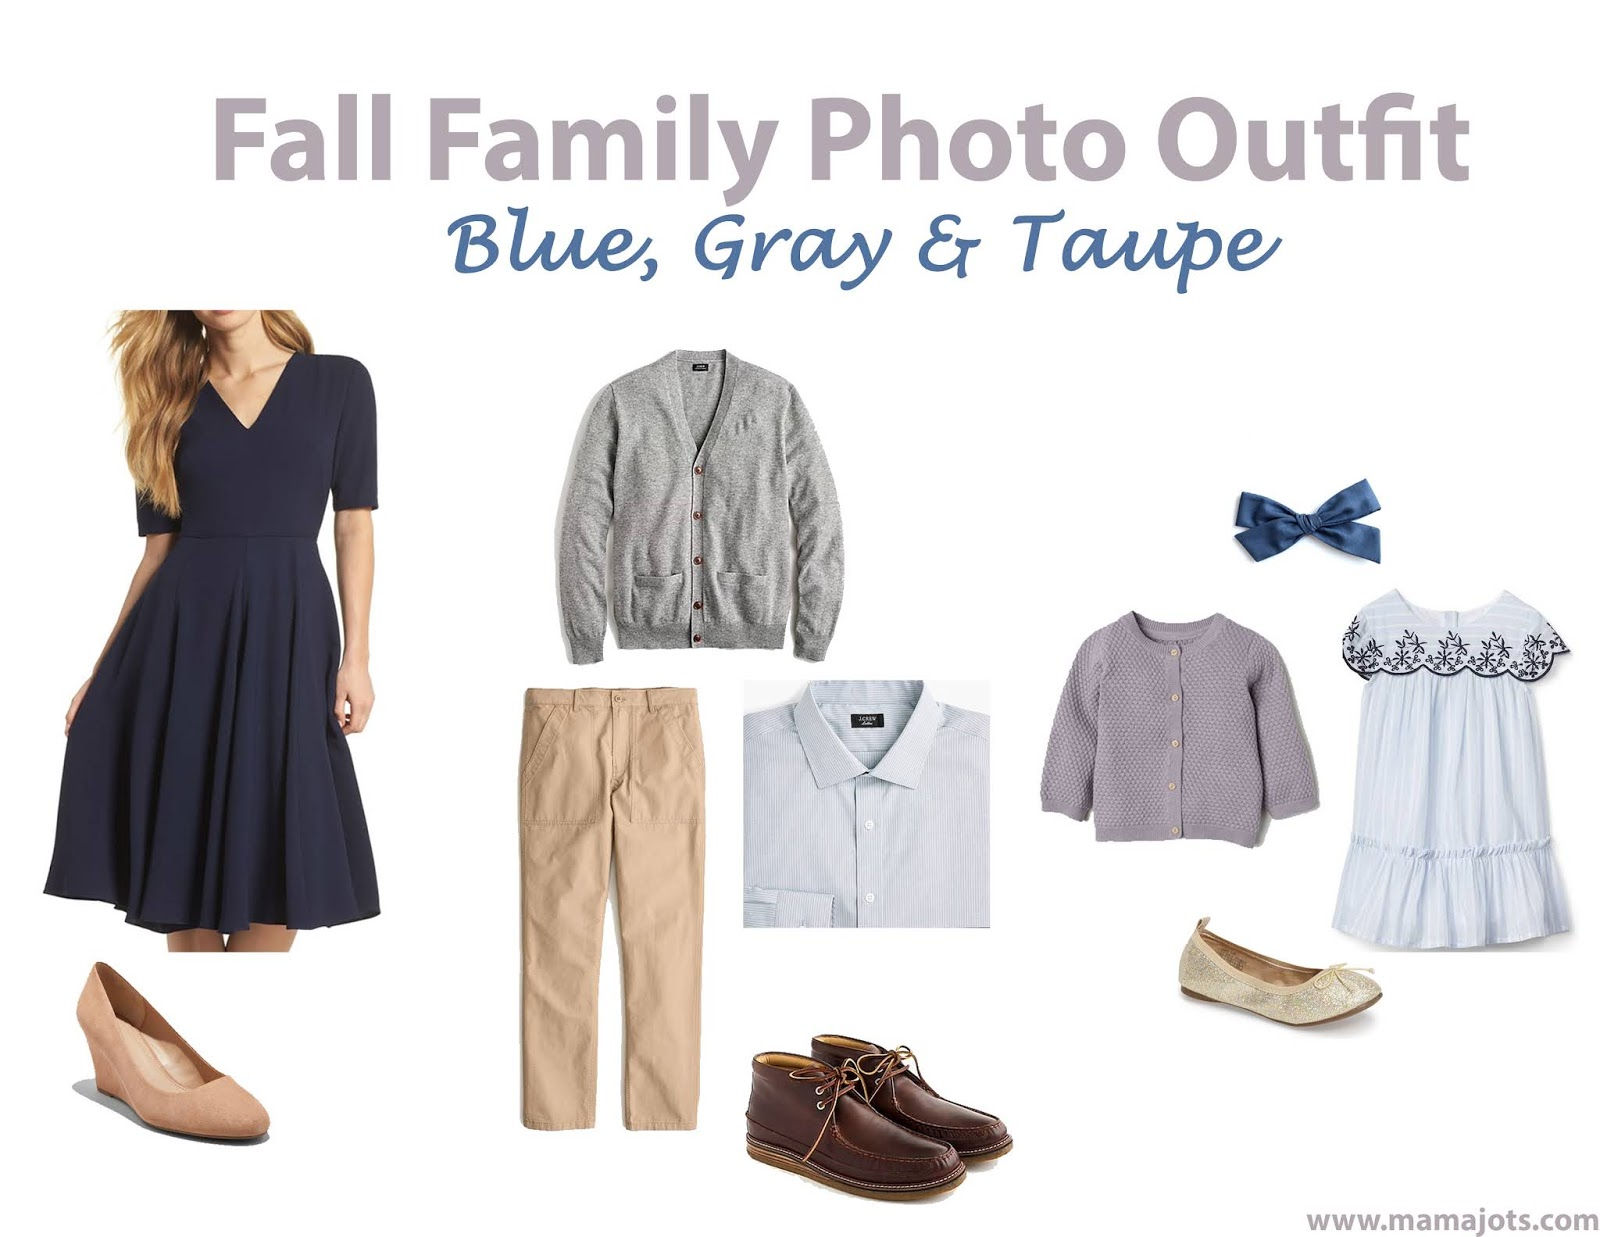 fall family photo outfit ideas blue, gray, brown